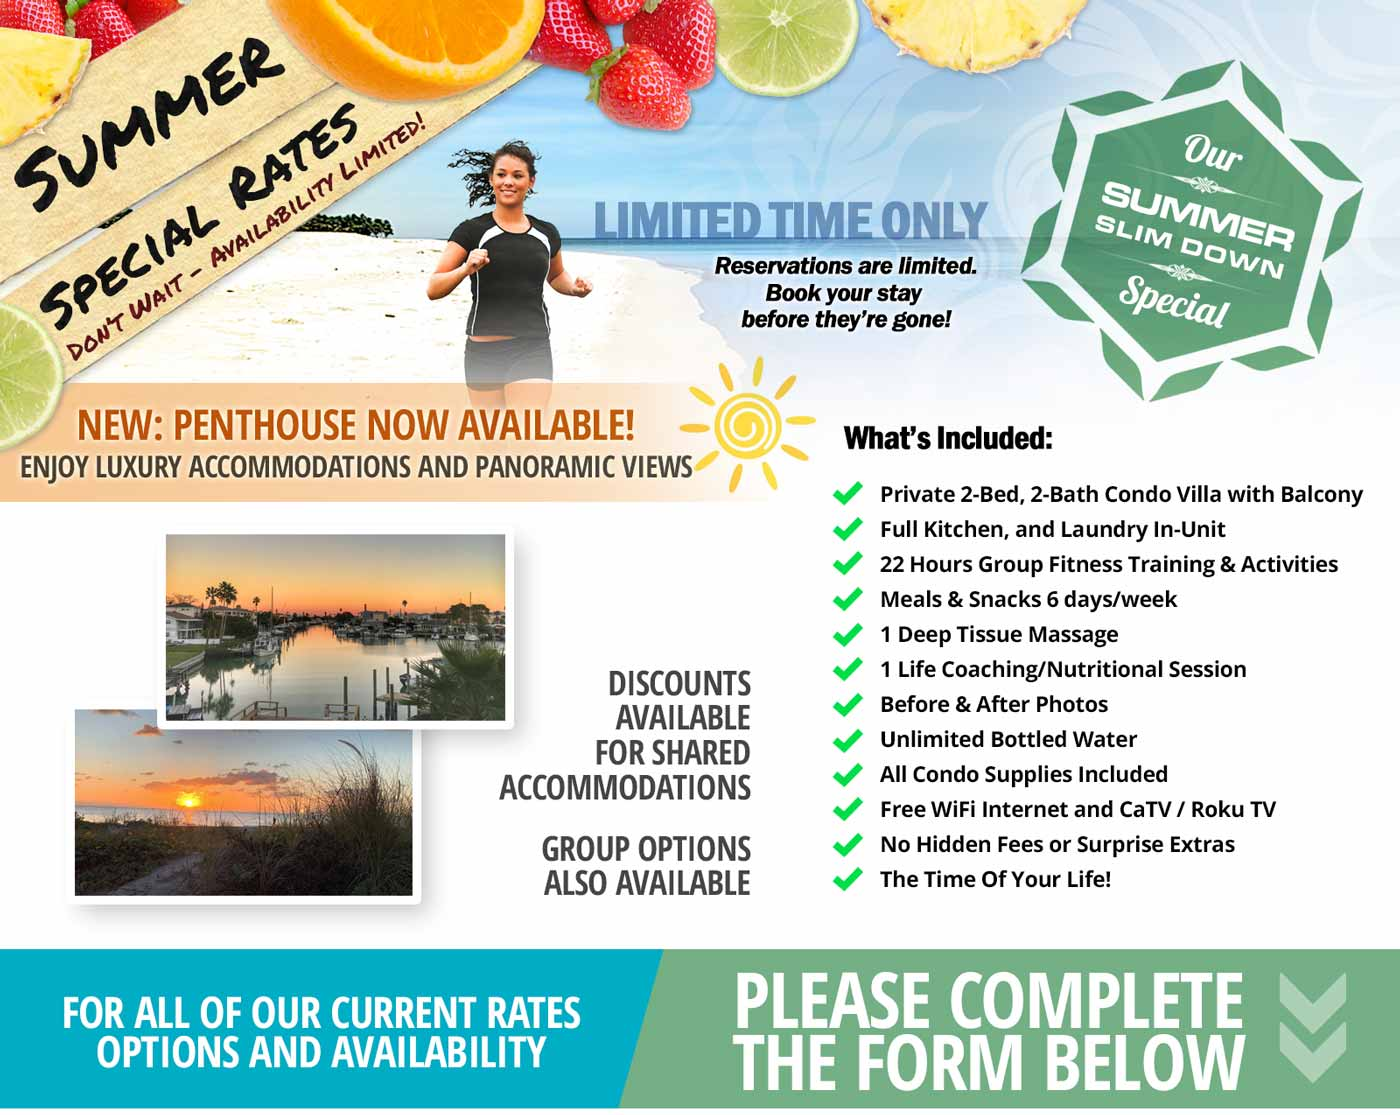 Limited time special rates for spring.